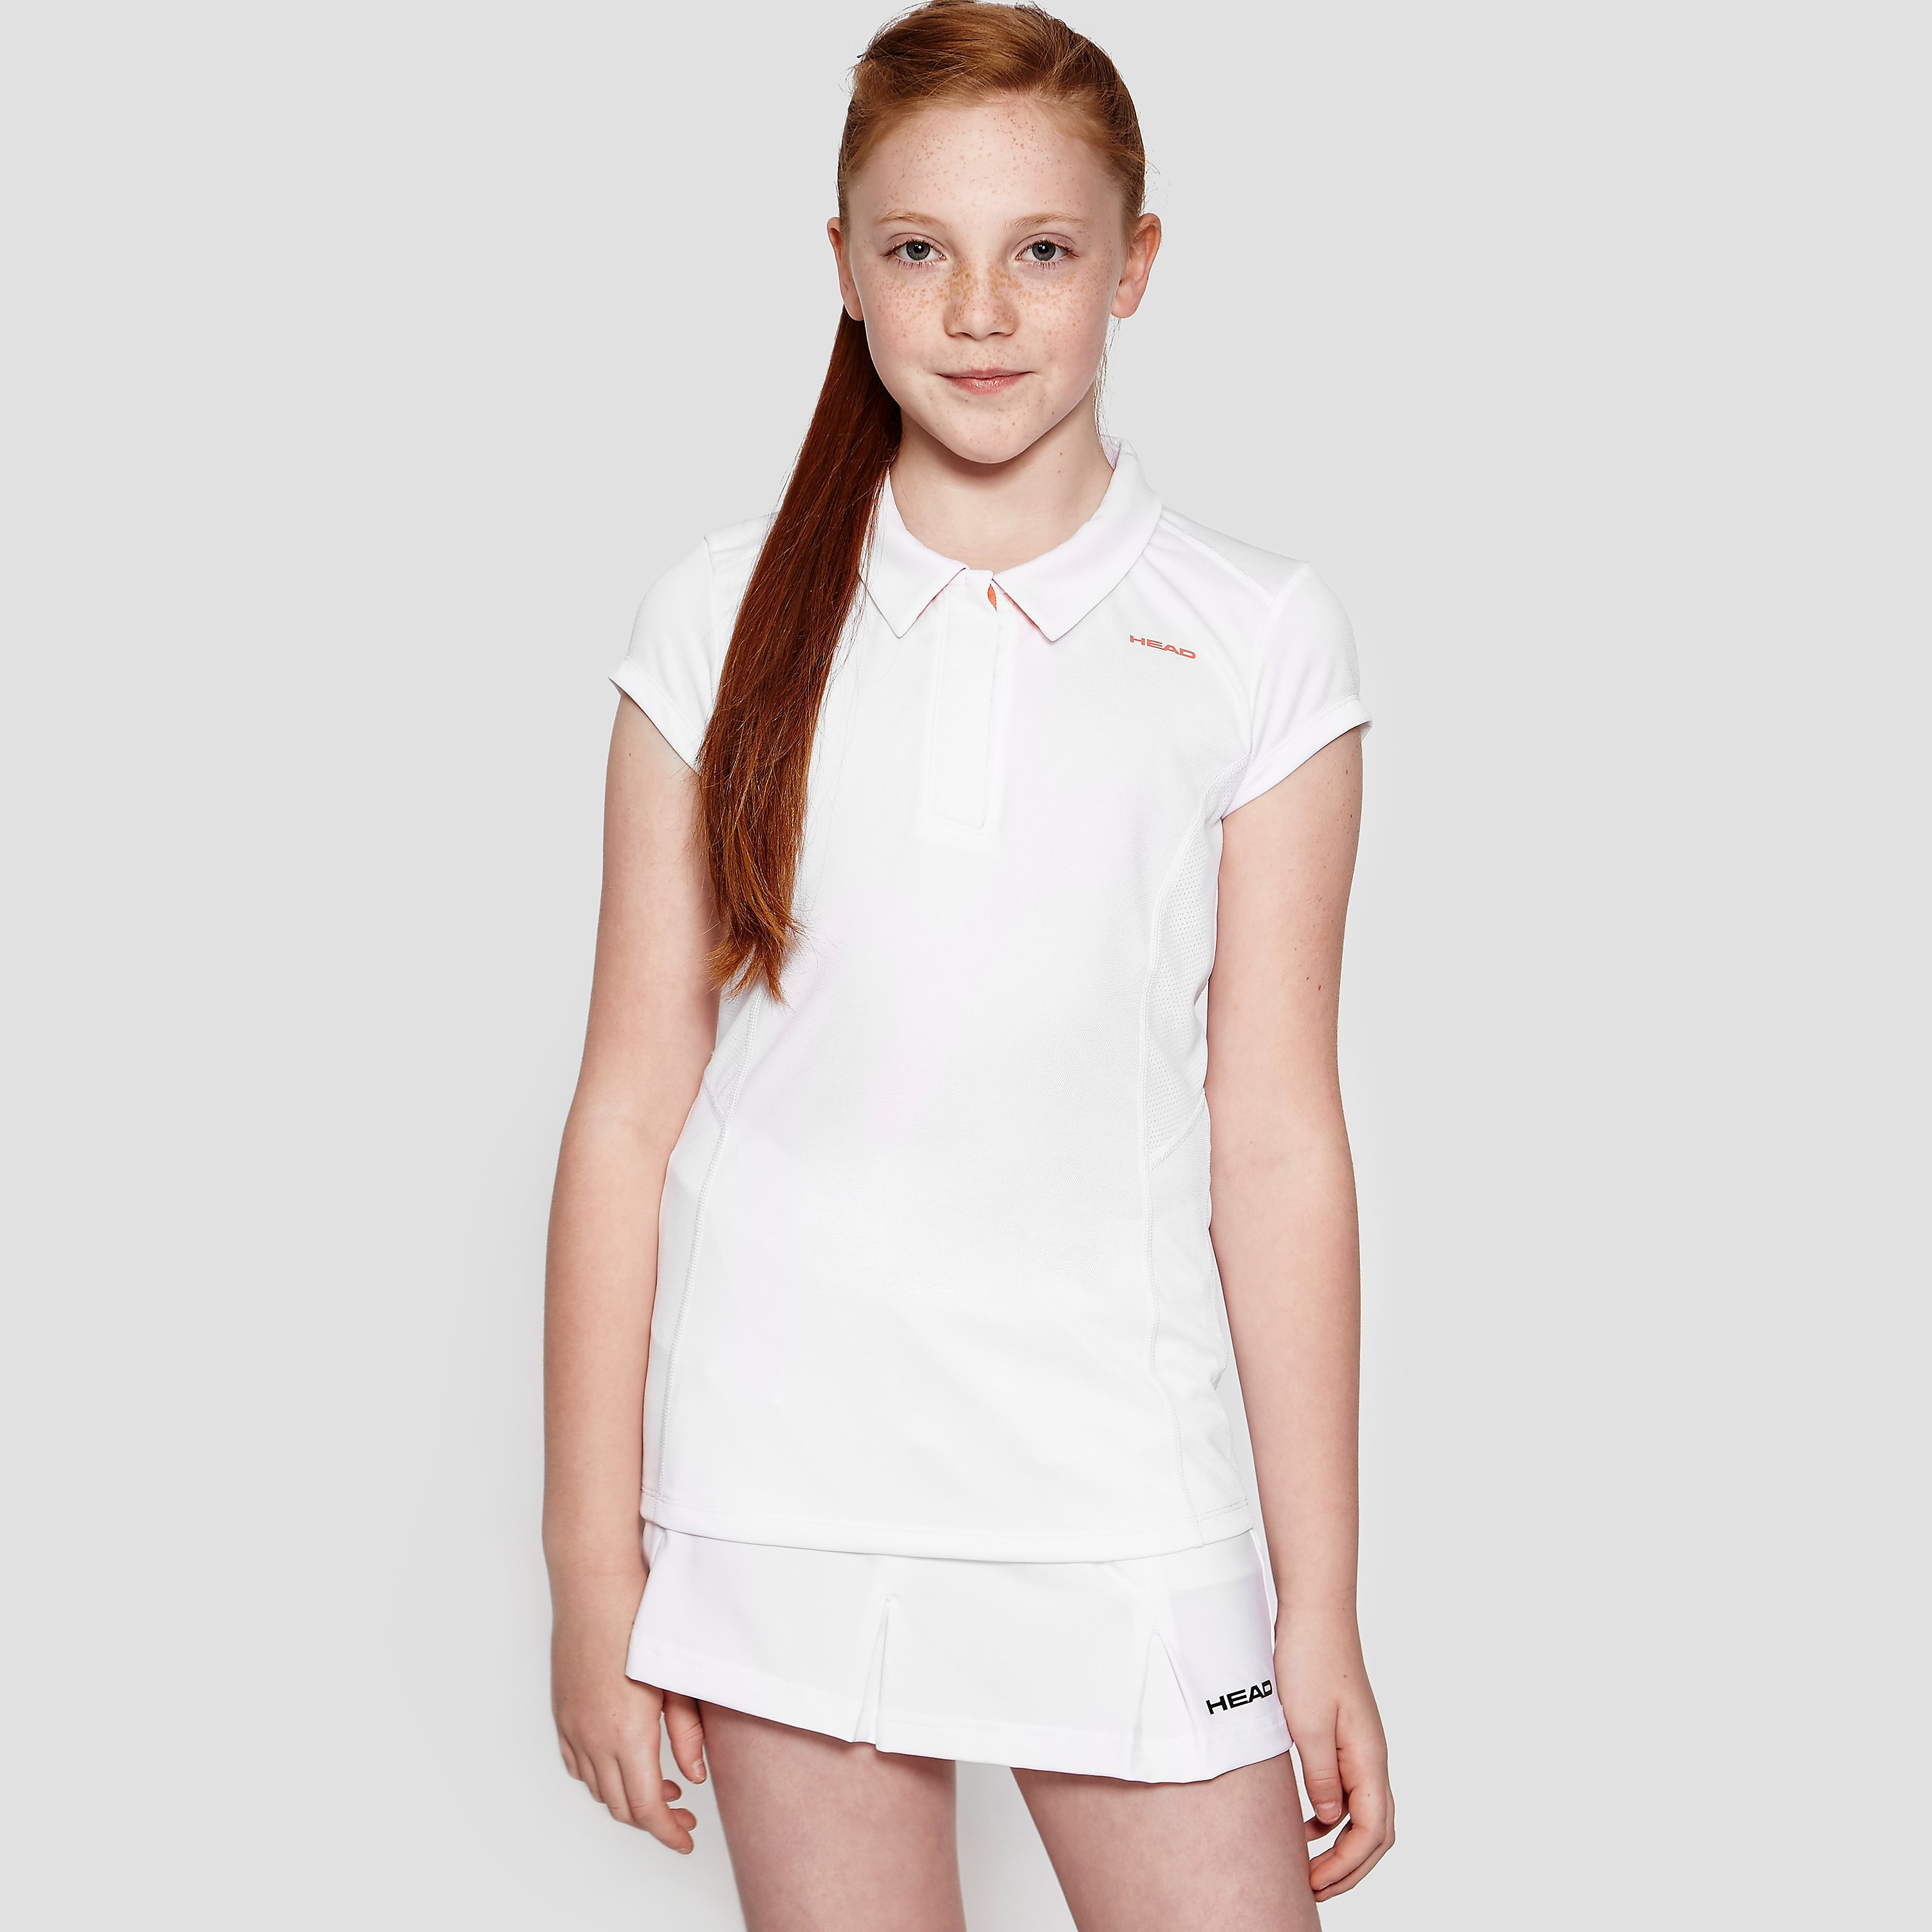 Head Performance Girl's Tennis Polo Top